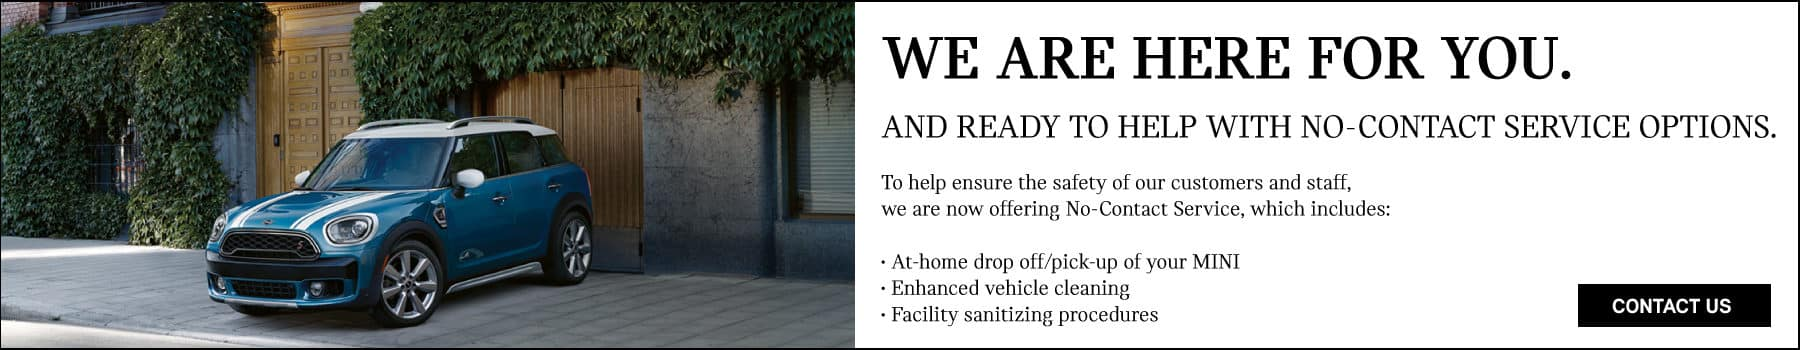 WE ARE HERE FOR YOU AND READY TO HELP WITH NO-CONTACT SERVICE OPTIONS. TO HELP ENSURE THE SAFETY OF OUR CUSTOMERS AND STAFF, WE ARE NOW OFFERING NO-CONTACT SERVICE, WHICH INCLUDES: AT HOME DROP-OFF AND PICK-UP OF YOUR MINI. ENHANCED VEHICLE CLEANING AND FACILITY SANITIZING PROCEDURES. CONTACT US BUTTON.